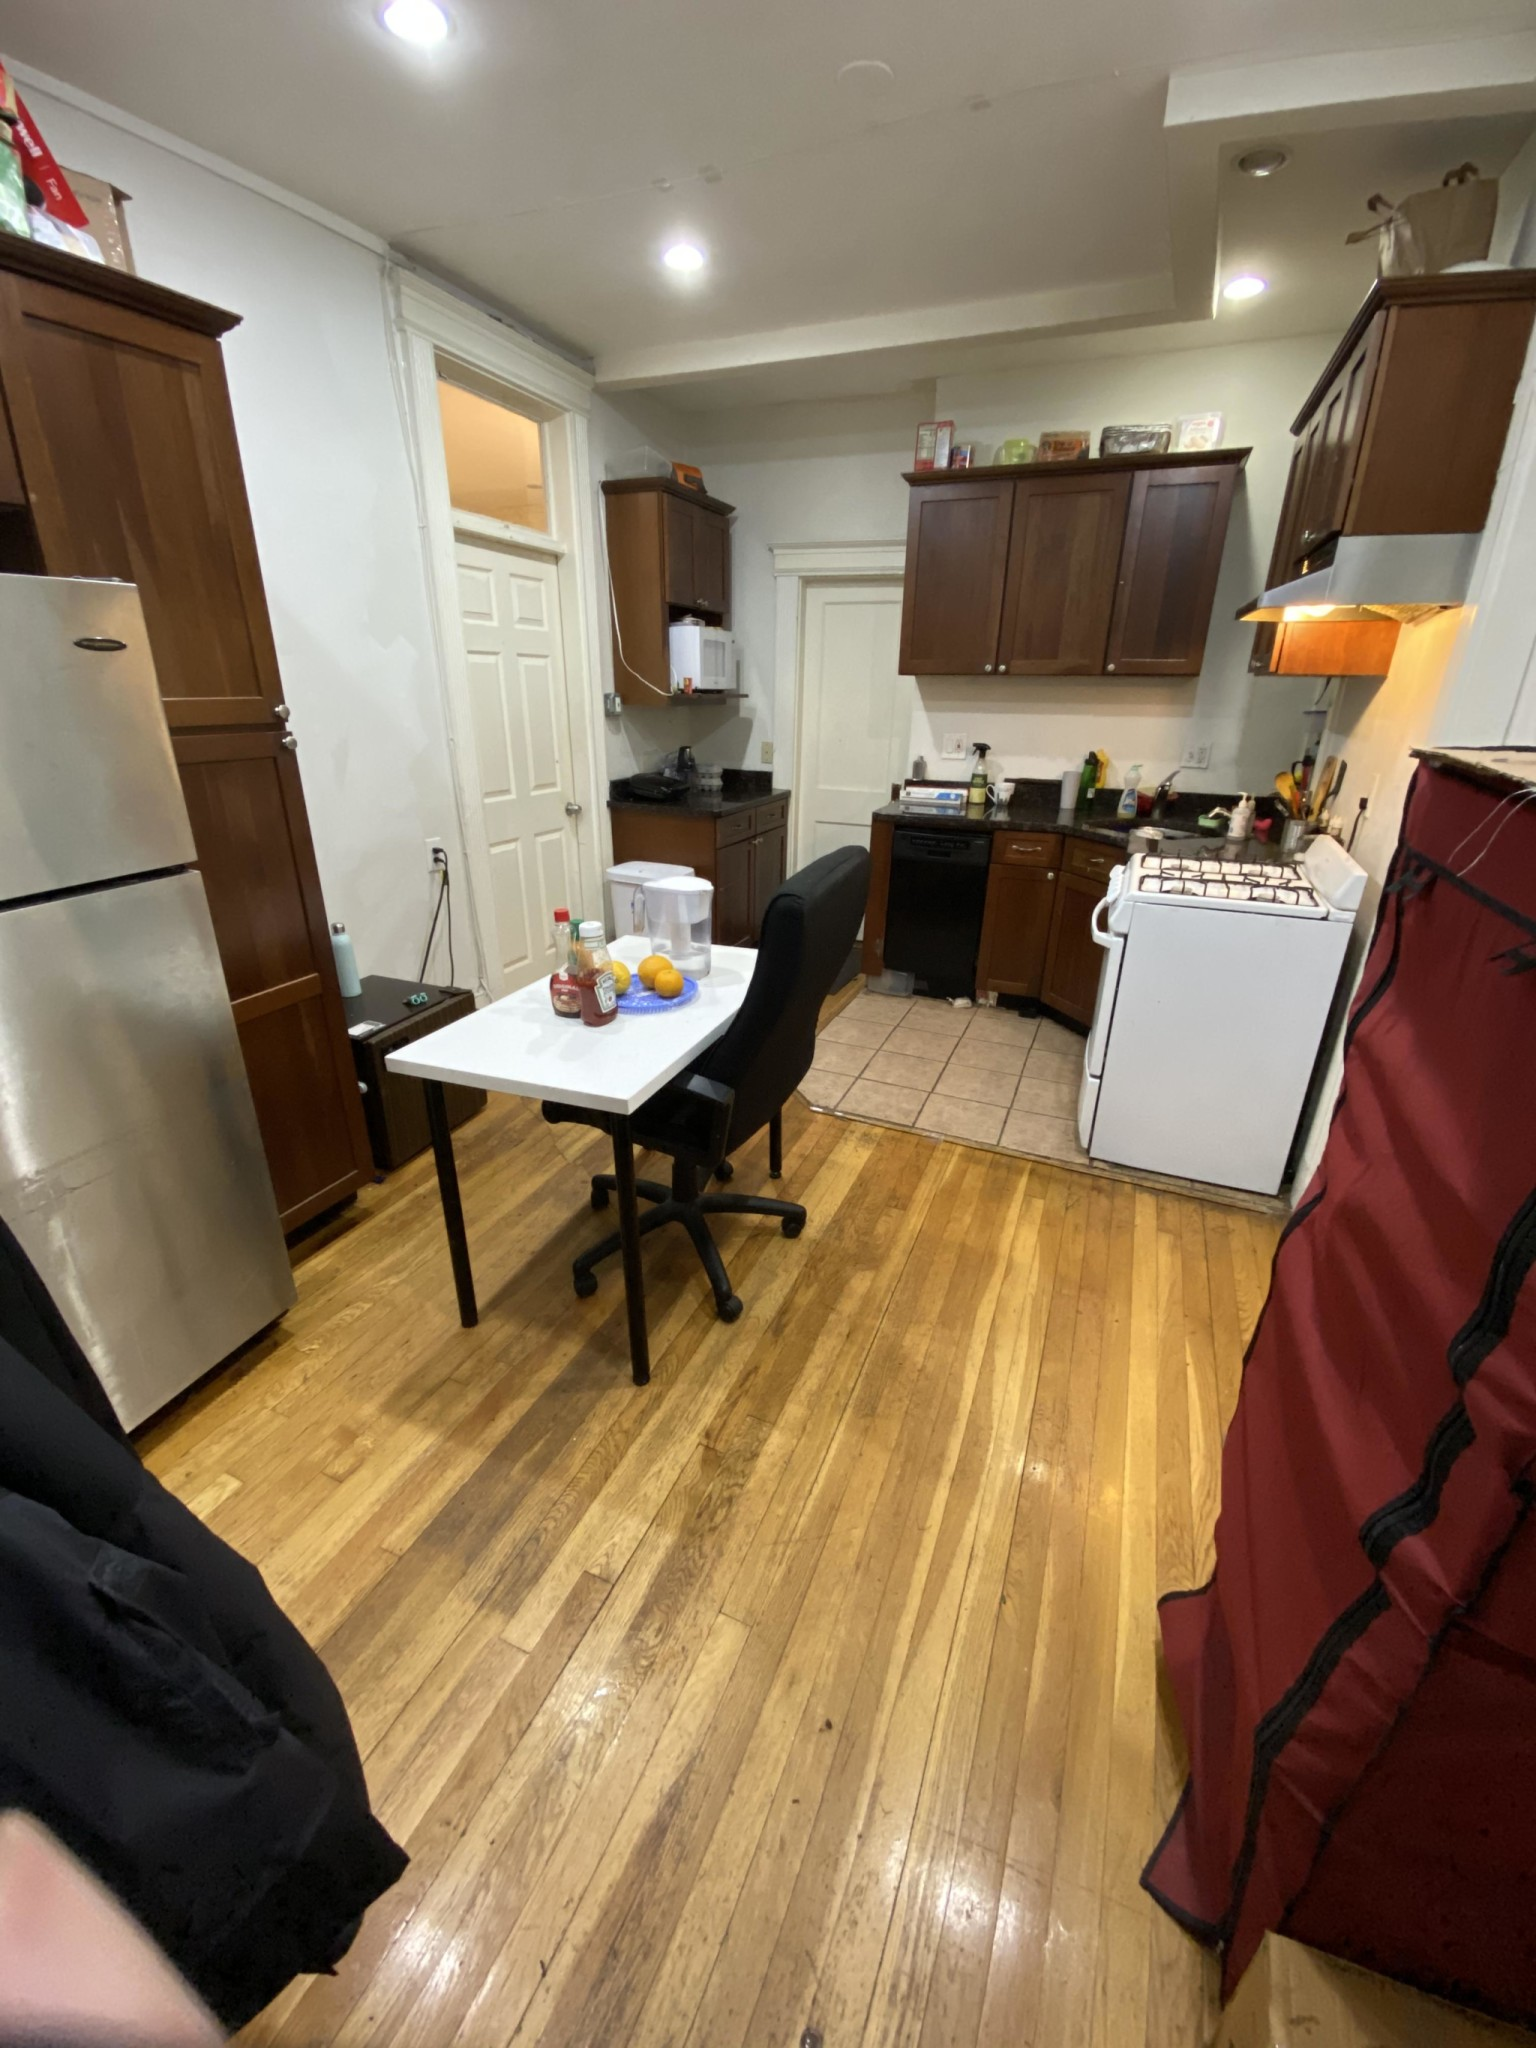 1.8 Beds, 1 Bath apartment in Boston, Fenway for $1,850